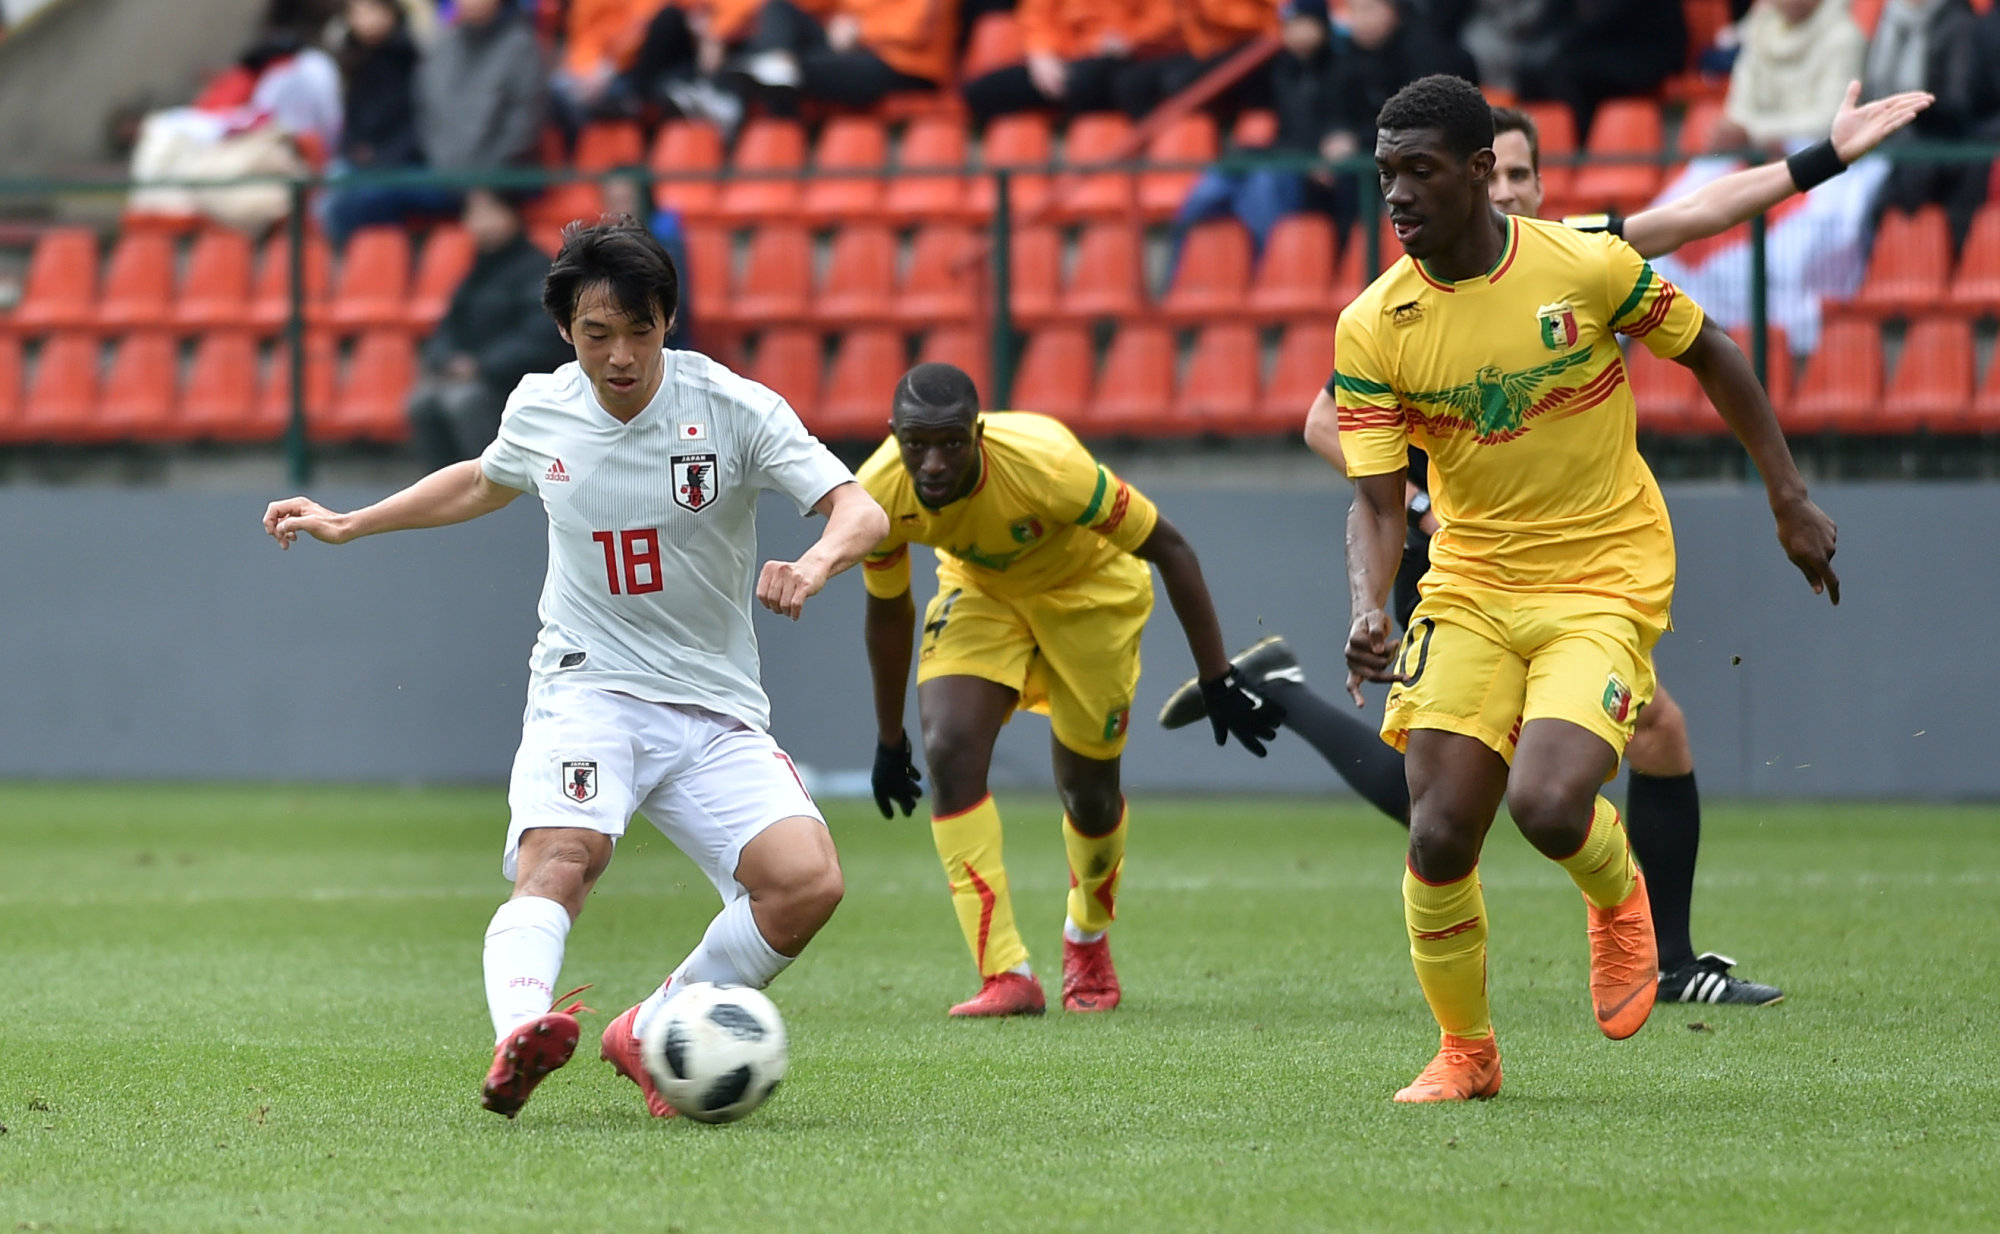 Japan's Shoya Nakajima takes a shot during an international friendly against Mali on Friday in Liege, Belgium. Nakajima scored a late equalizer in the 1-1 draw. | REUTERS